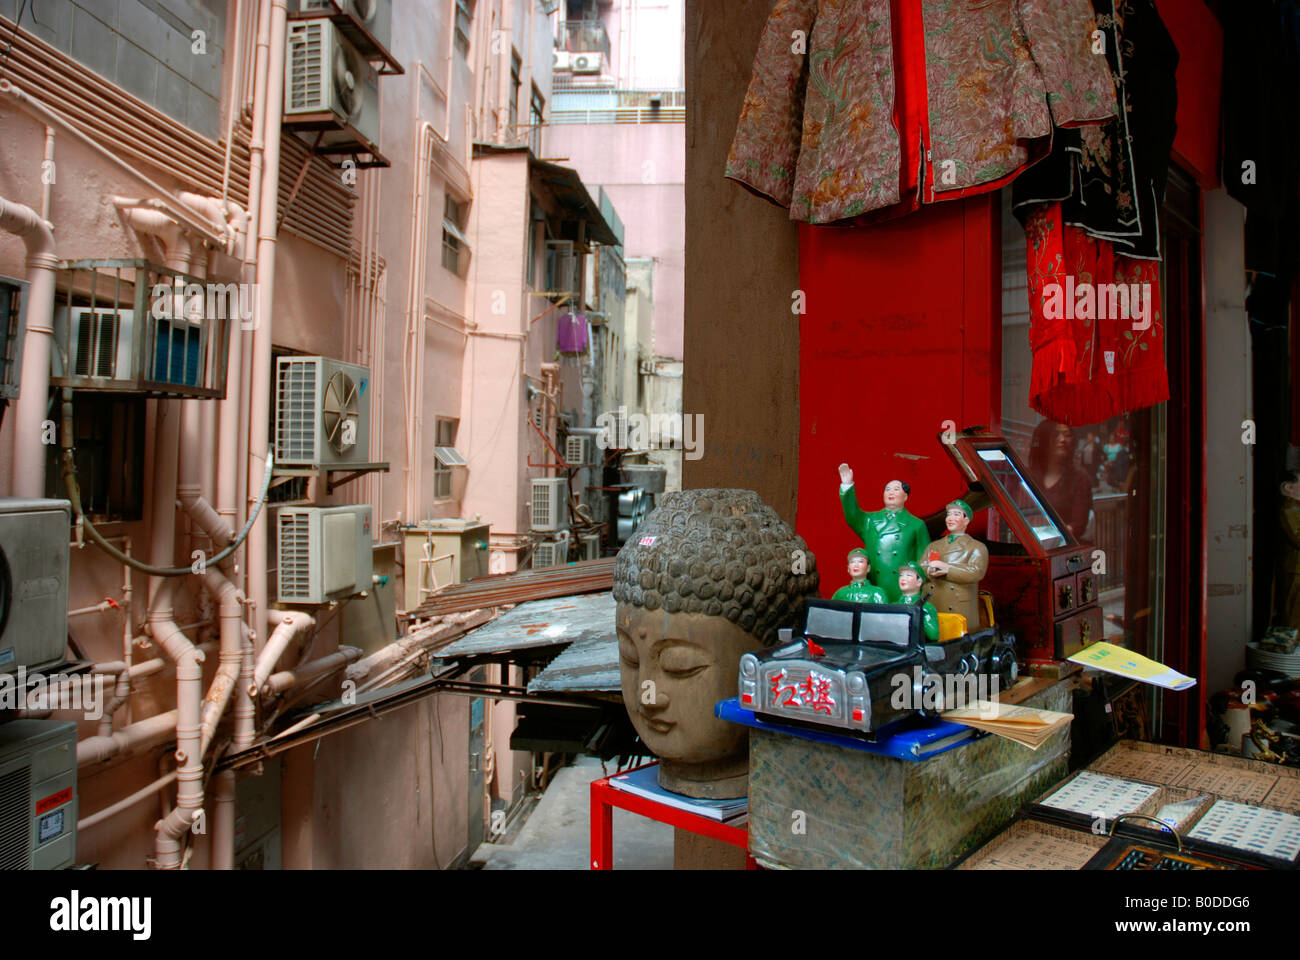 Communist memorabilia and Buddhist artifacts in an antique store in Hong Kong - Stock Image